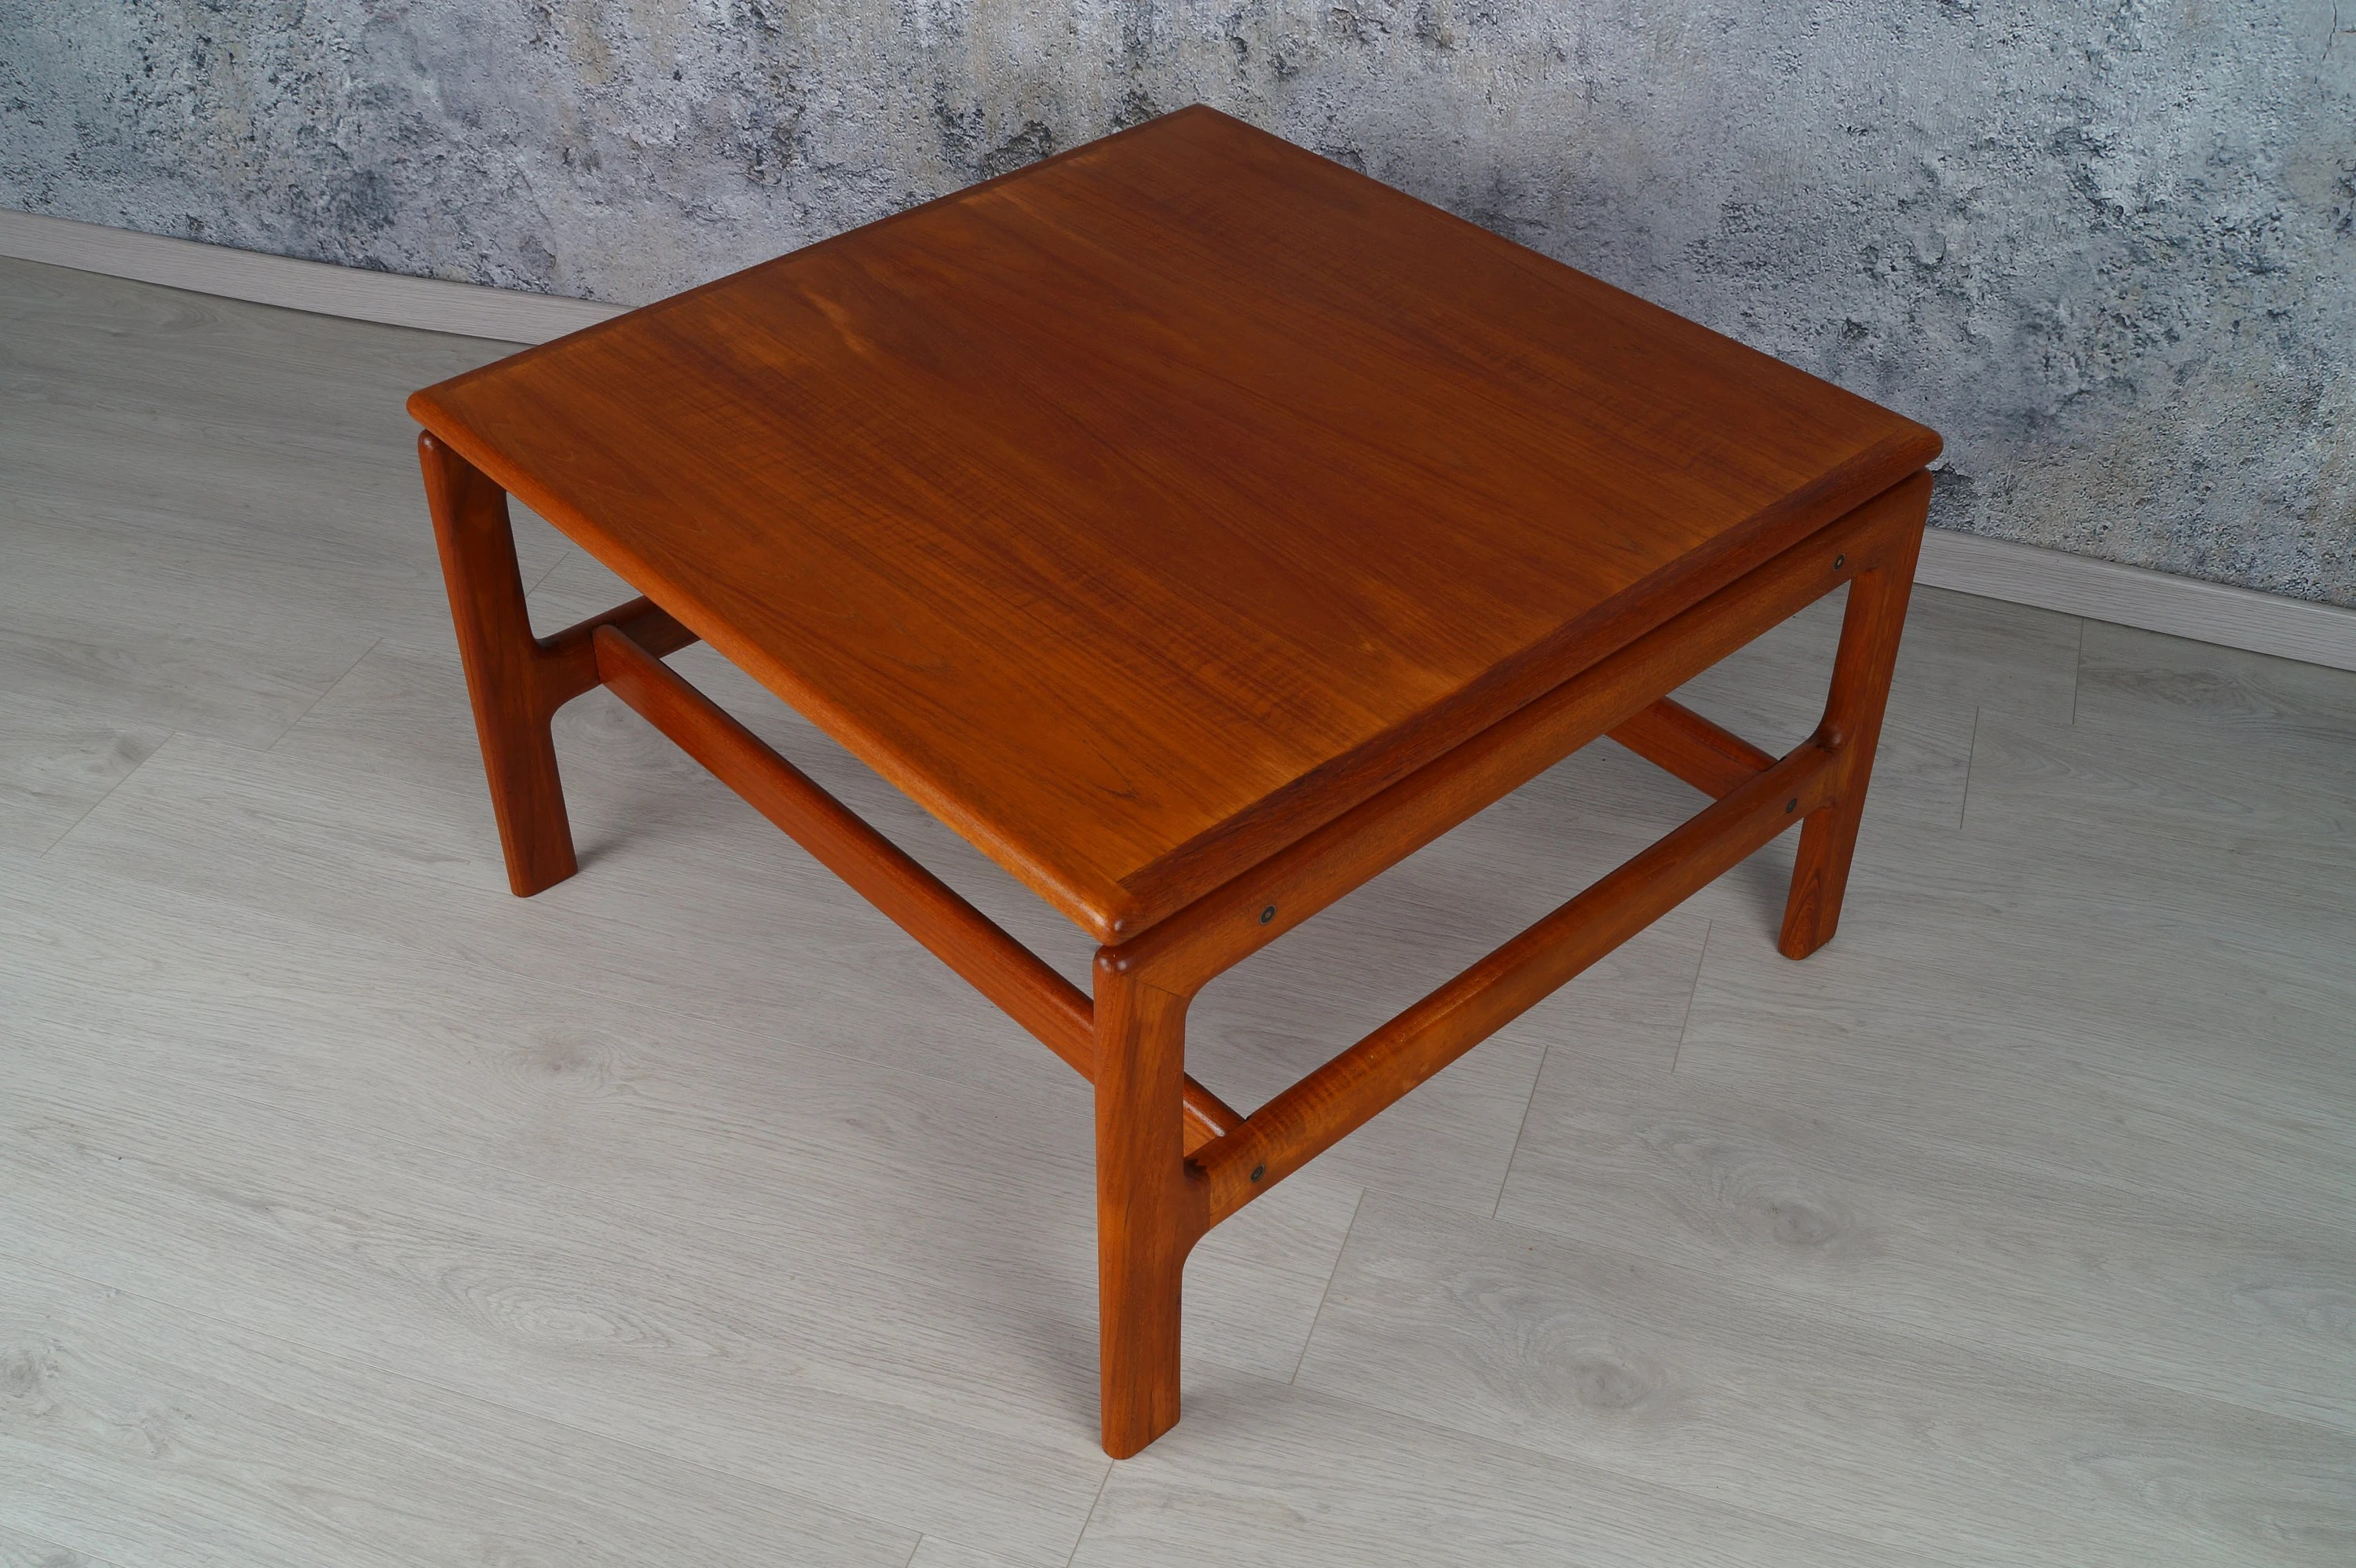 Teak Tisch 80x80 Teak Coffee Table 80 X 80 Cm Square Comfort 60s Danish 60s